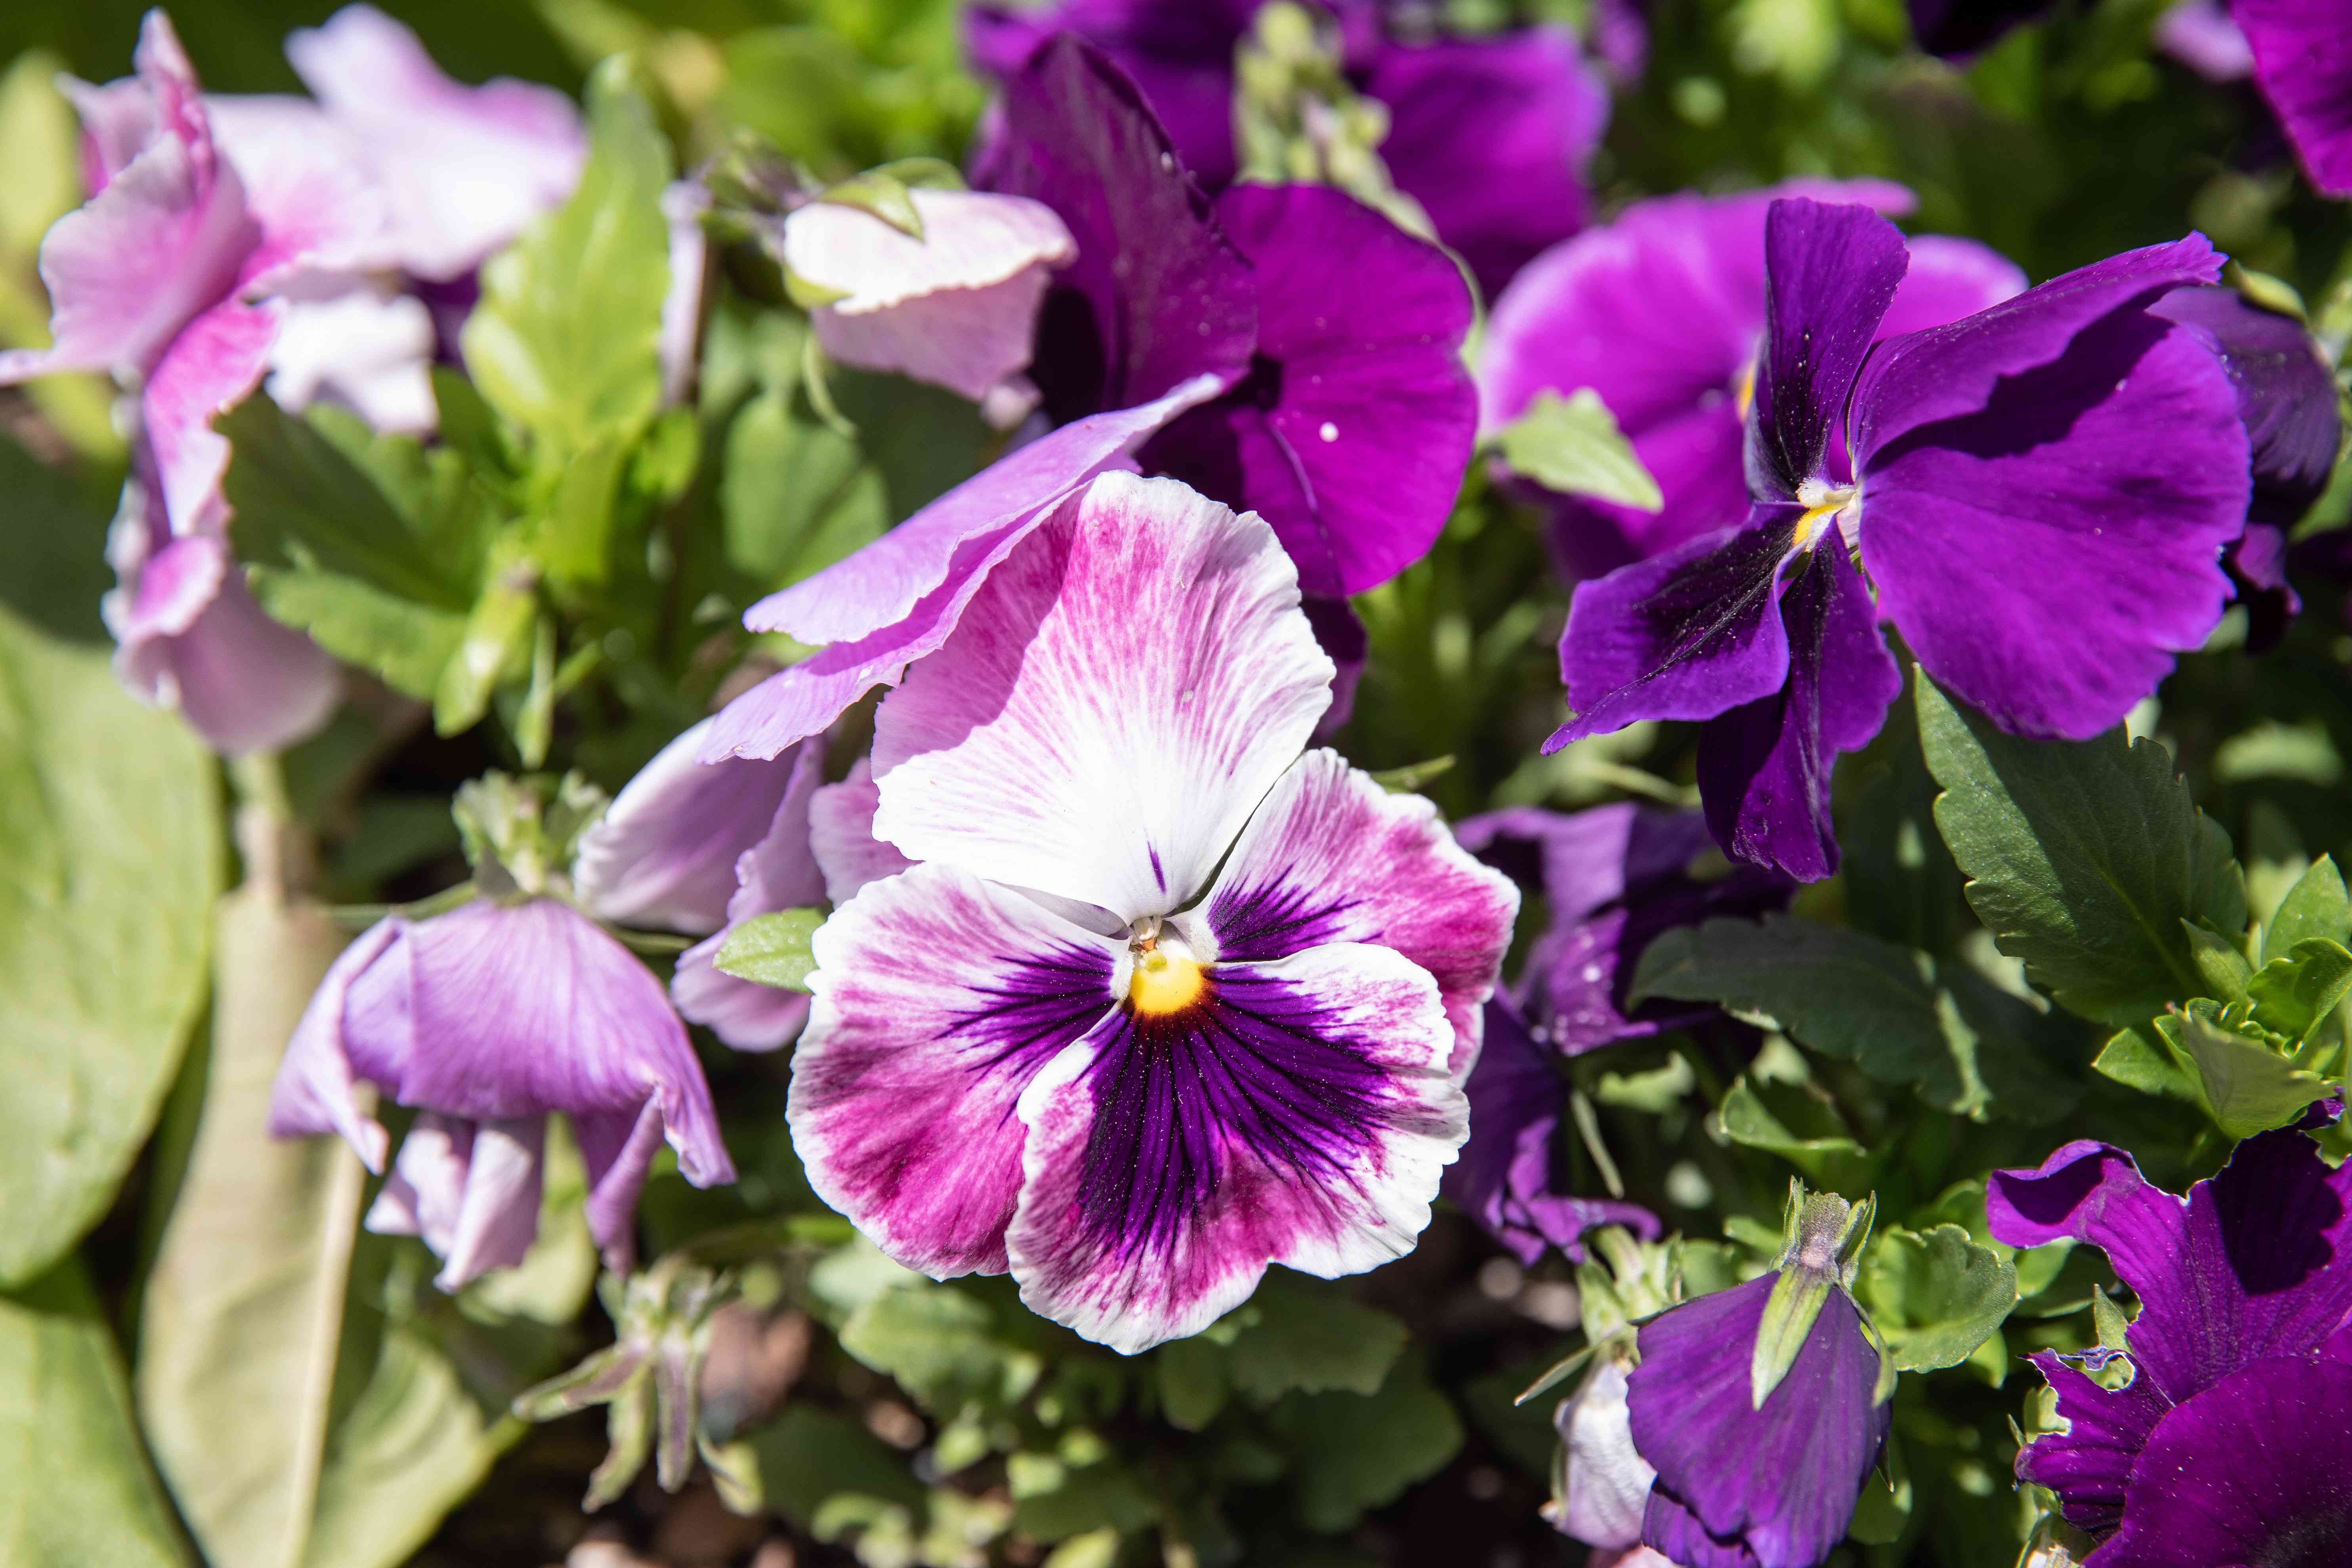 Viola and pansy flowers with purple petals and white and pink petals in sunlight